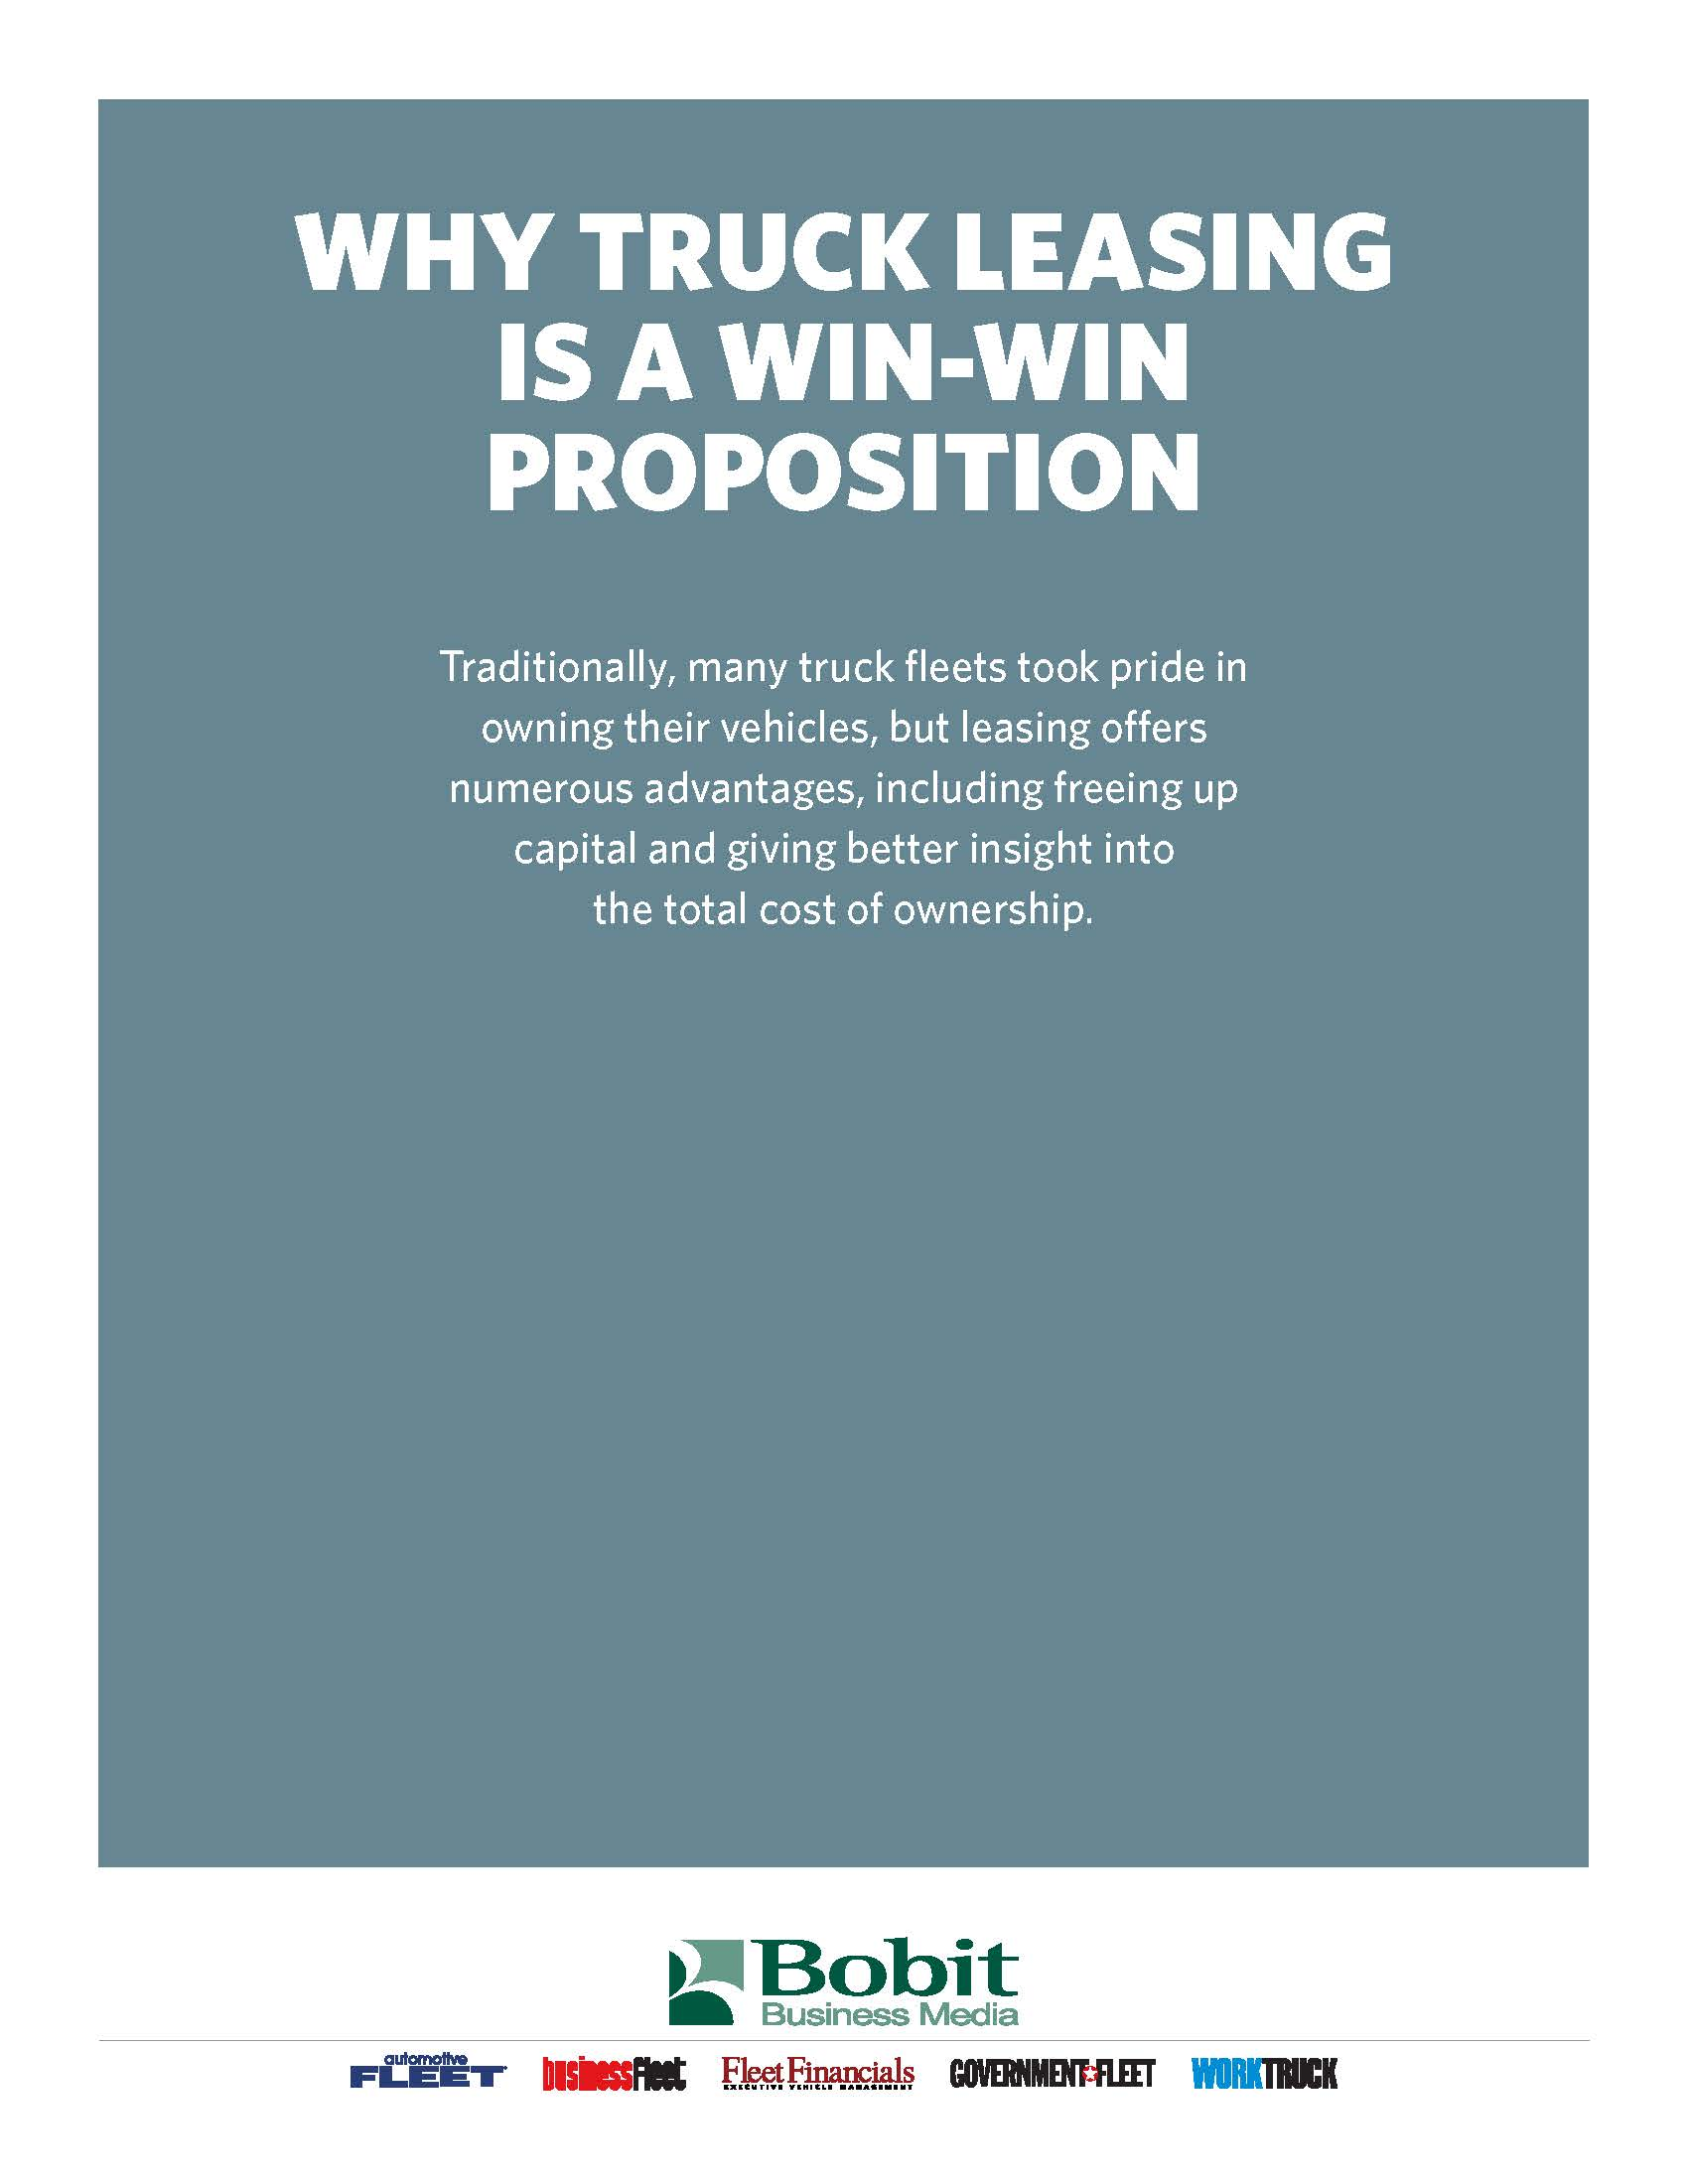 A Win-Win Proposition